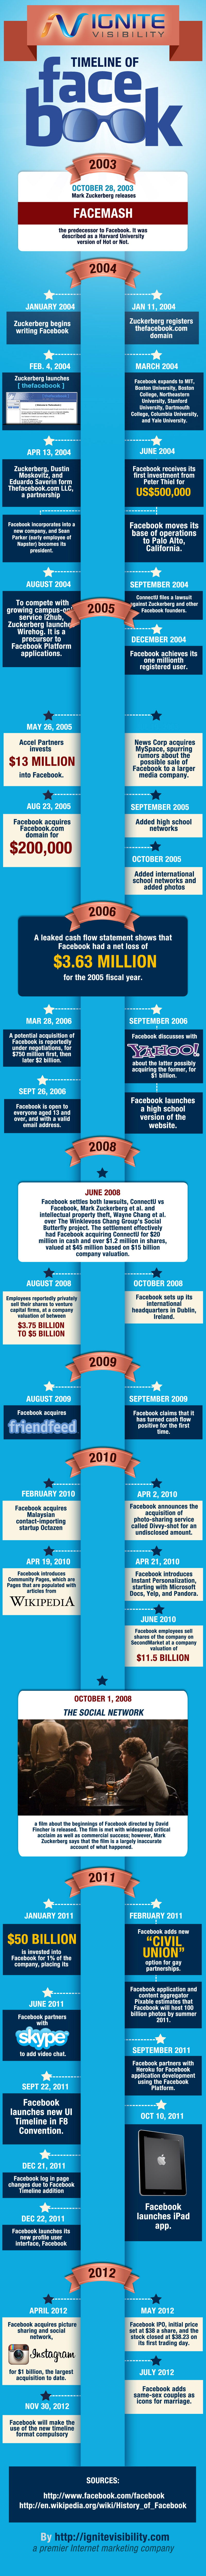 The History of Facebook from 2003 to 2012